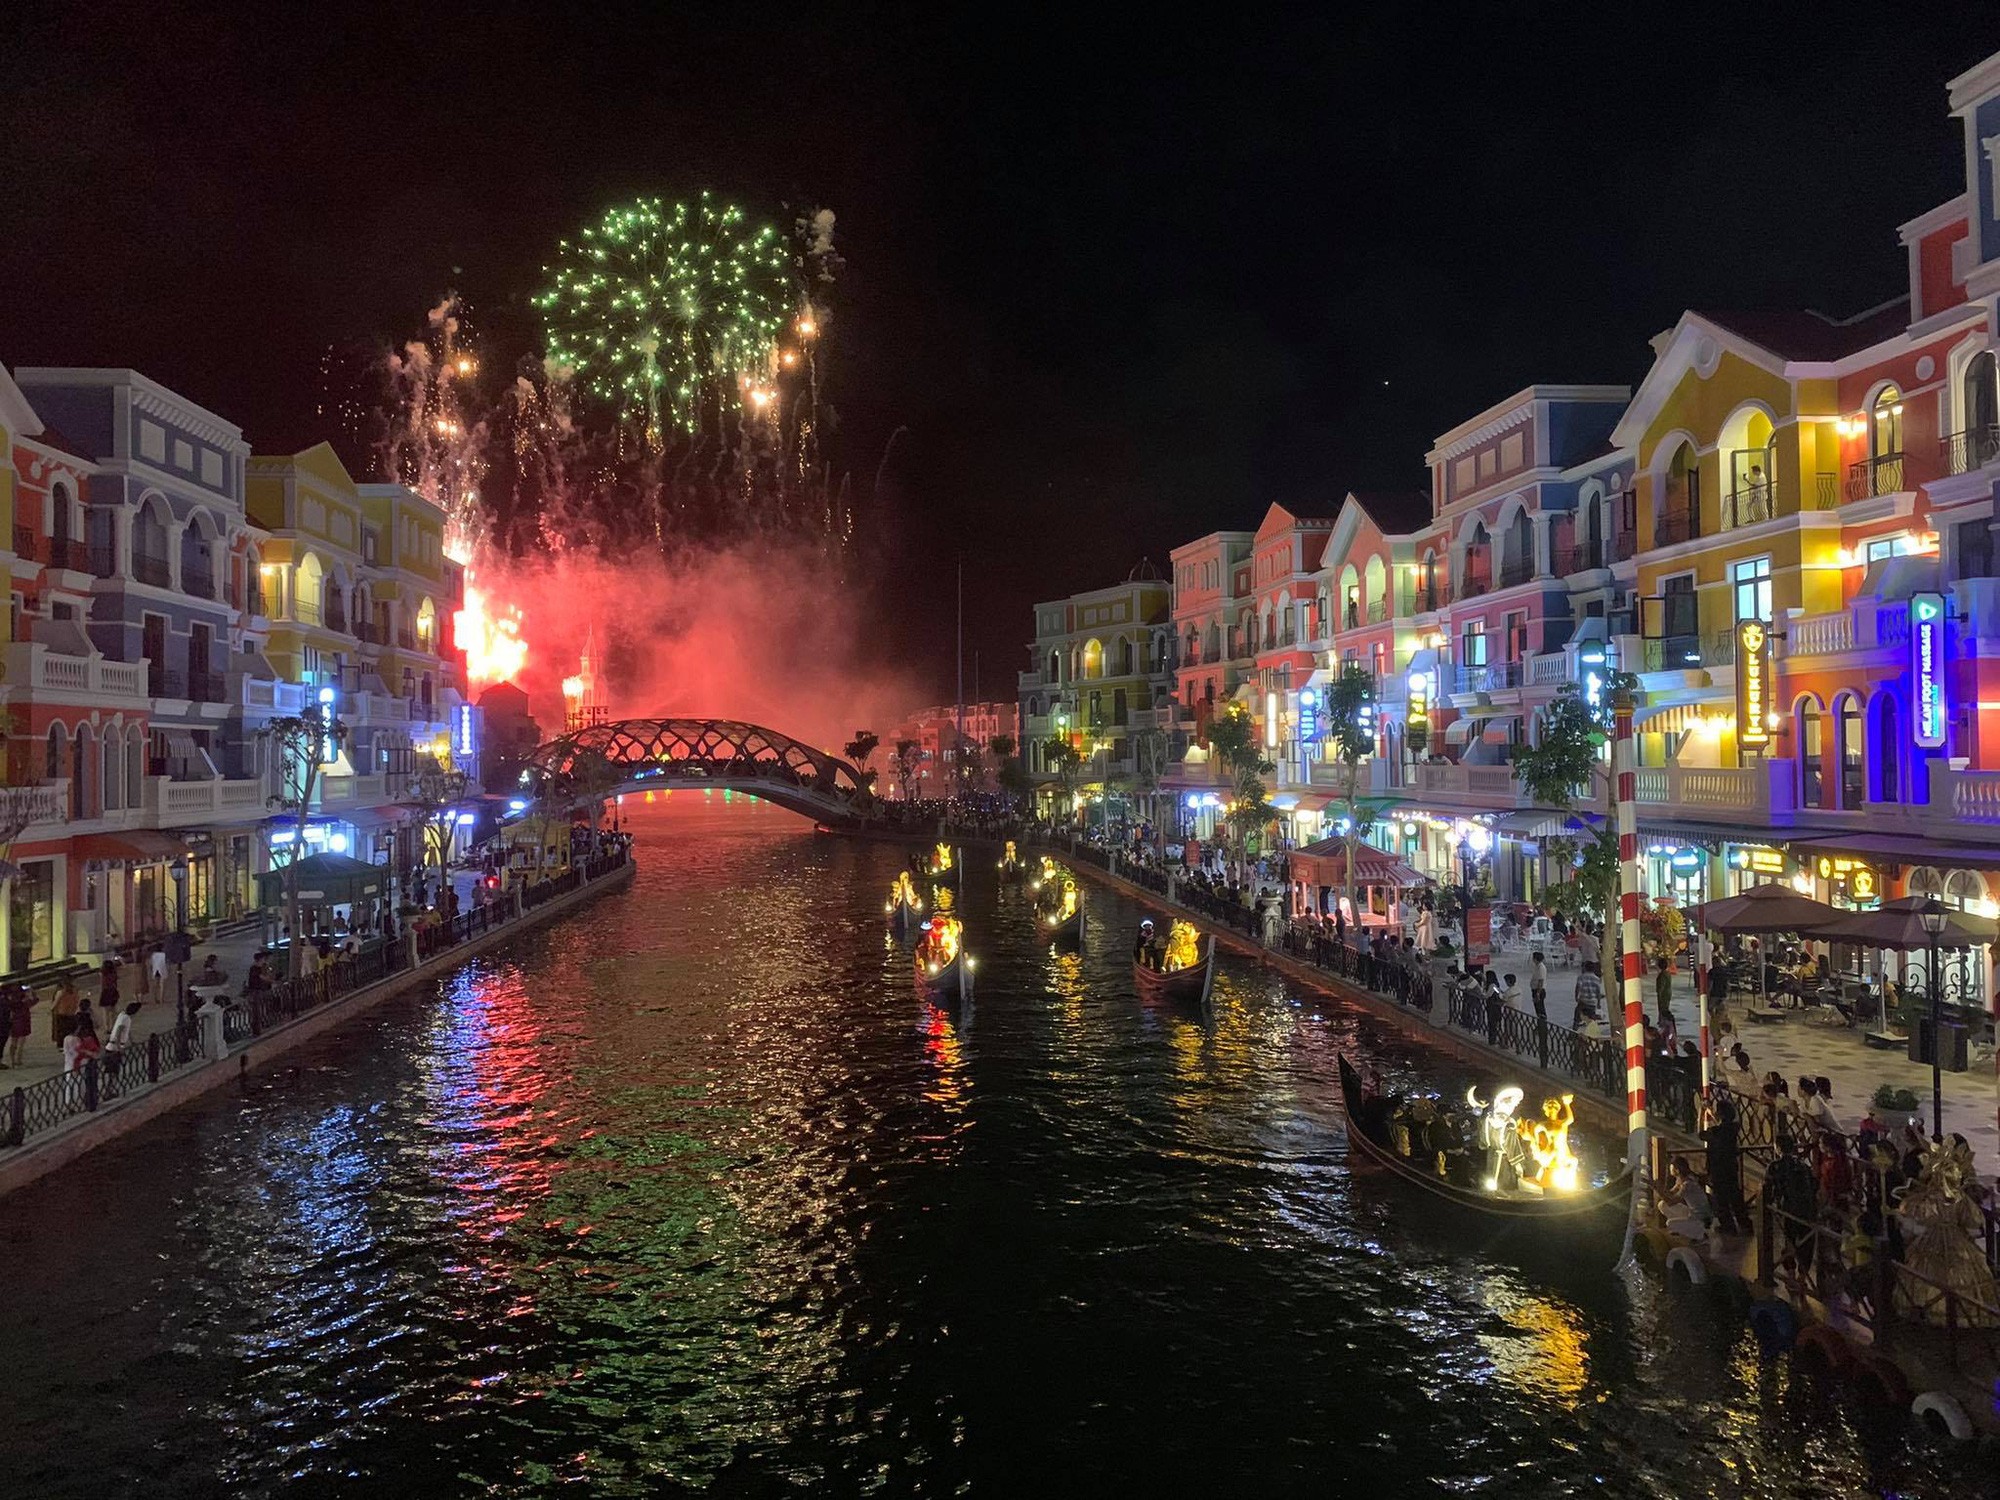 A firework performance at the Venice's Grand Canal at Phu Quoc United Center. Photo: T.T.D. / Tuoi Tre